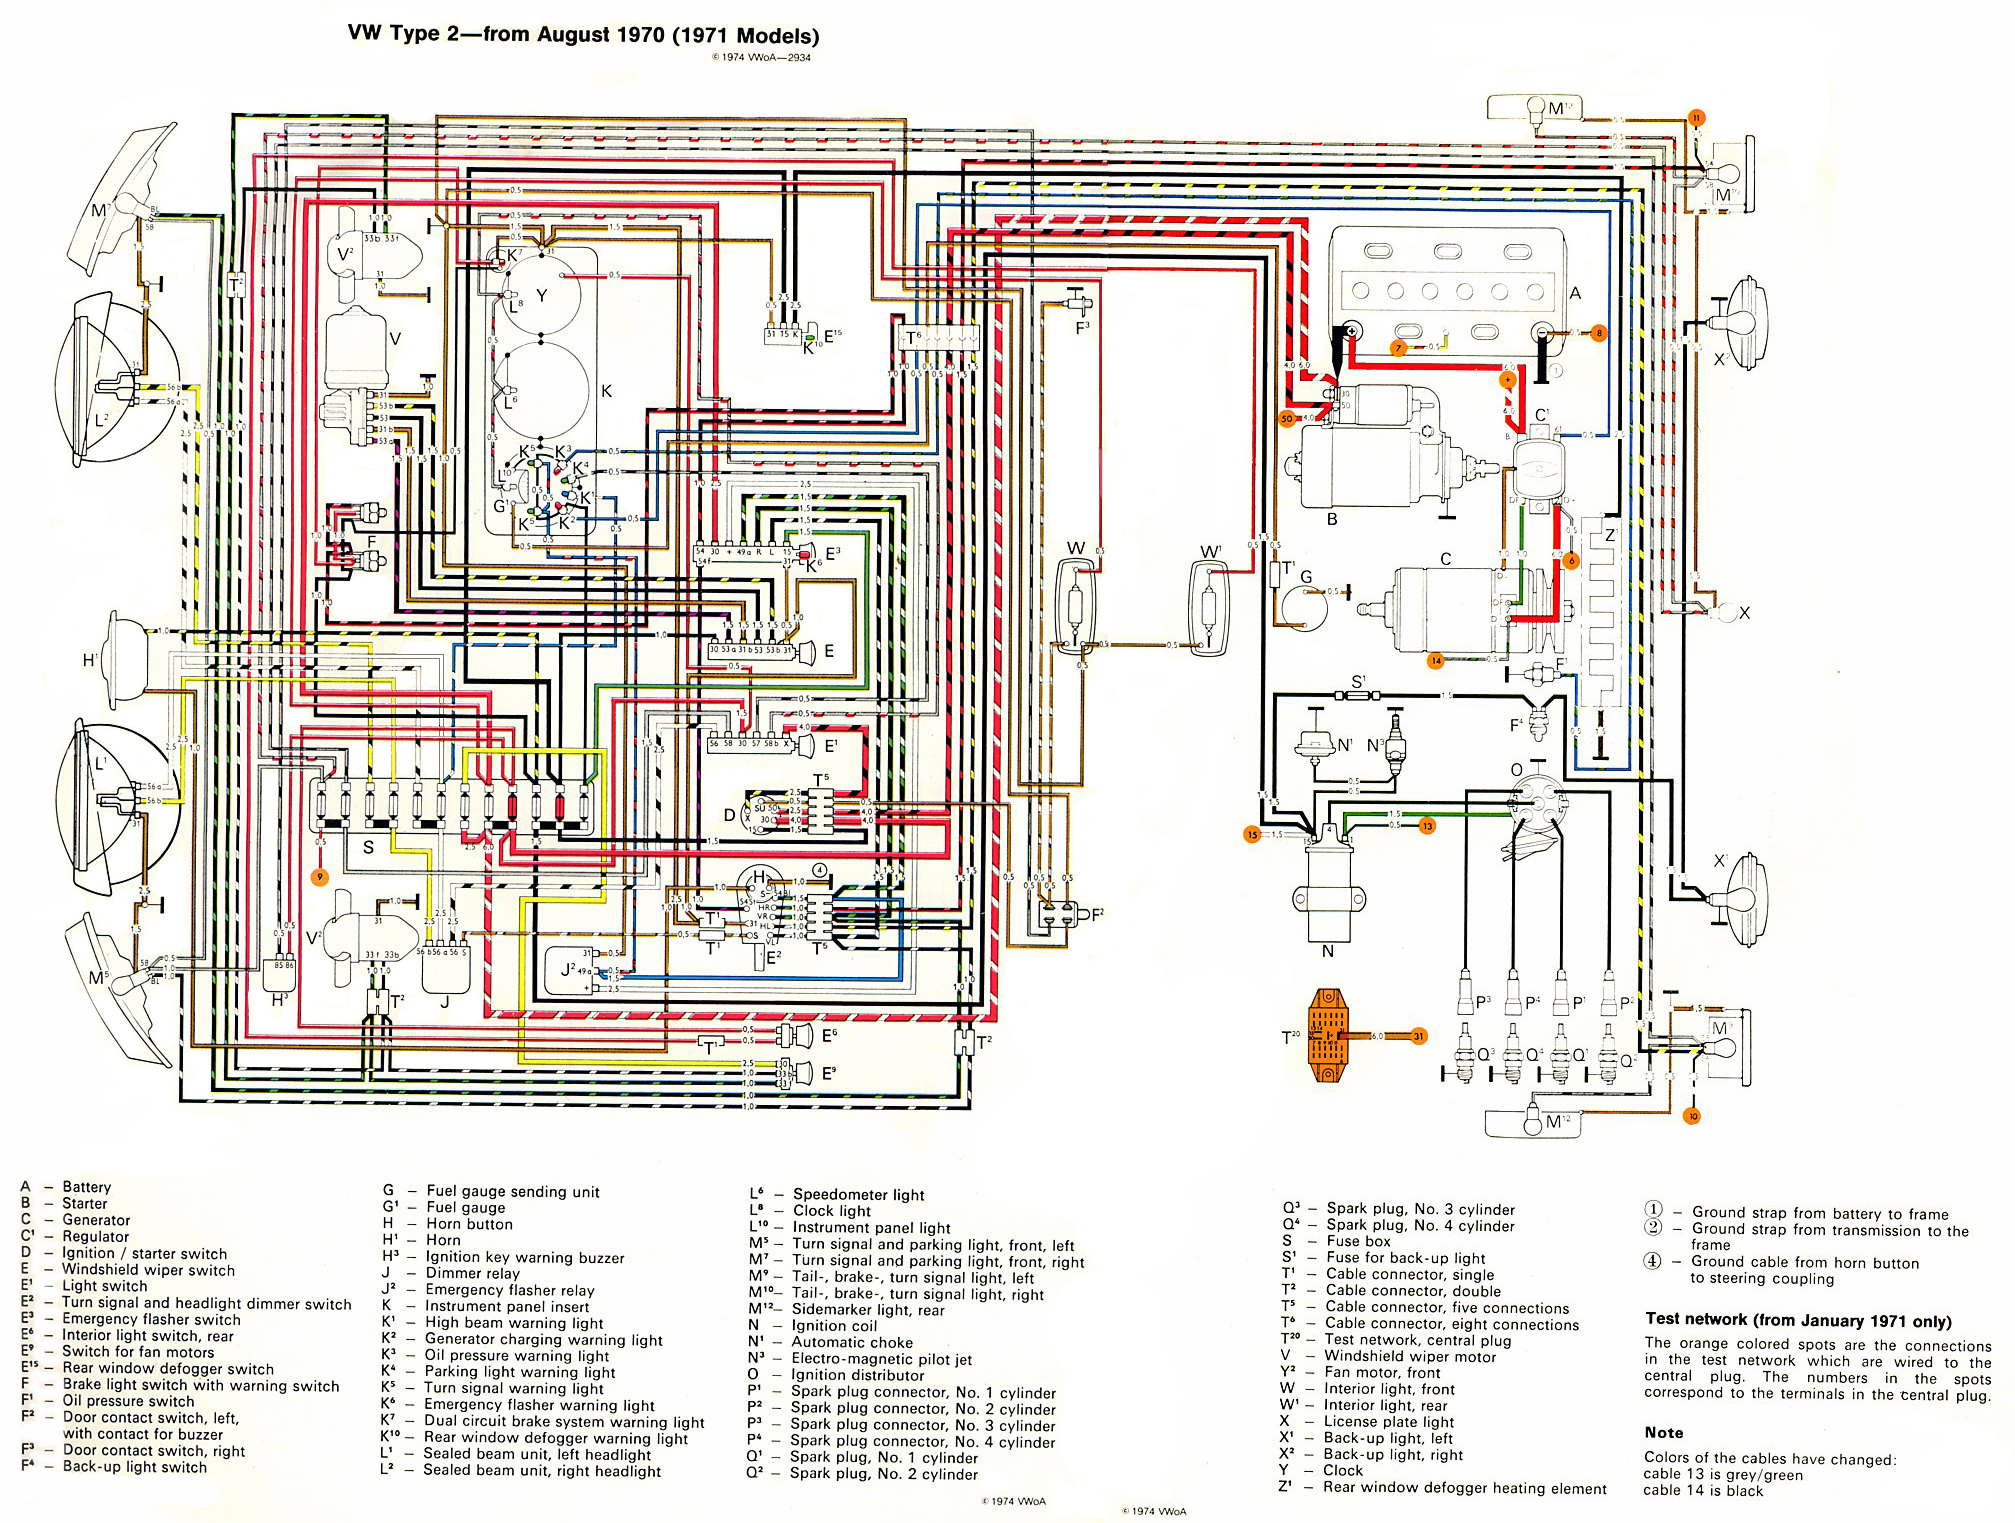 baybus_71_fixed vw t4 horn wiring diagram efcaviation com vw t4 fuse box wiring diagram at edmiracle.co